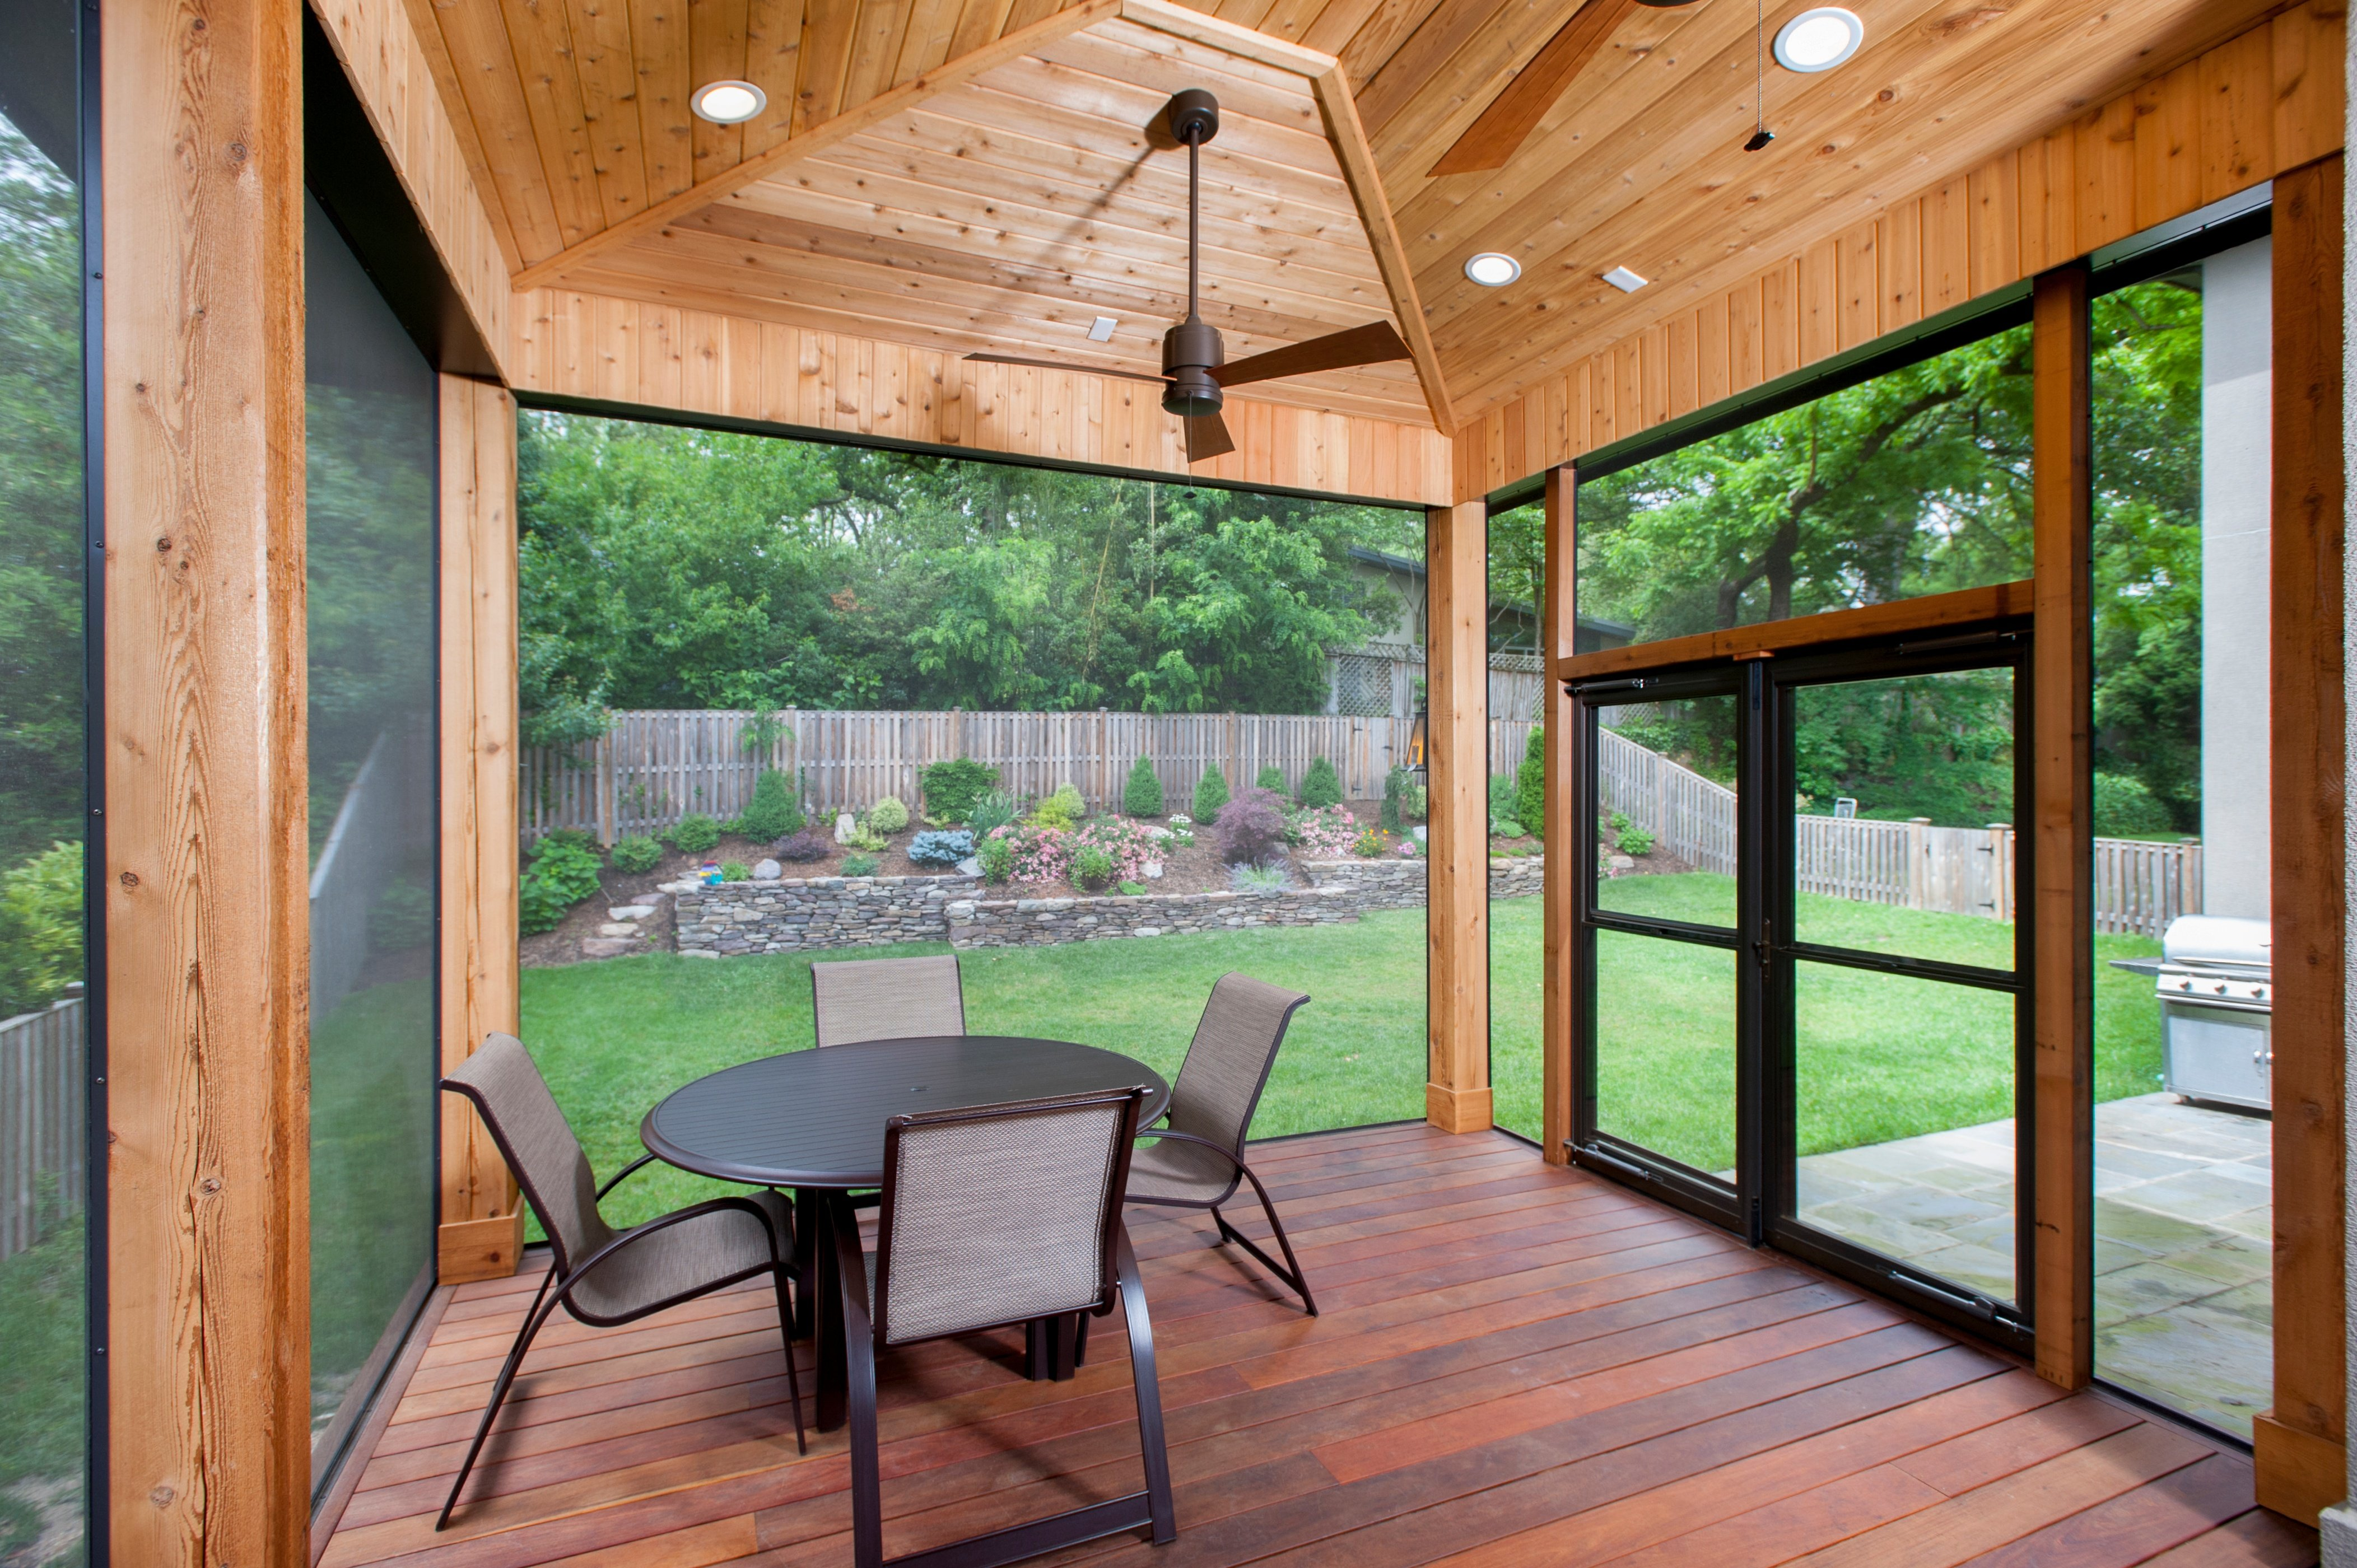 Best Screened Porch Screens And Deck Screening Materials For 2020